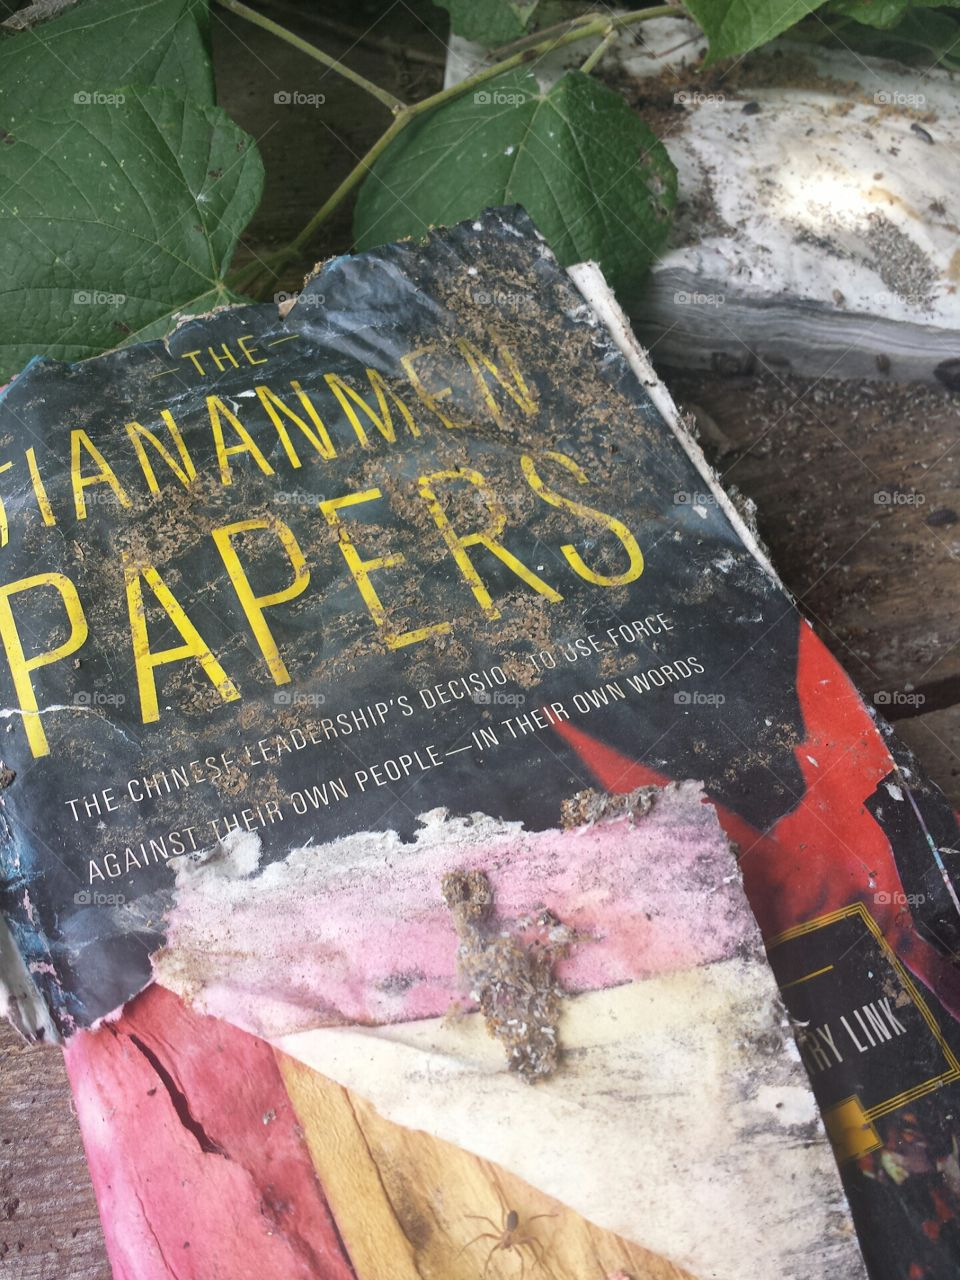 The Tiananmen Papers book